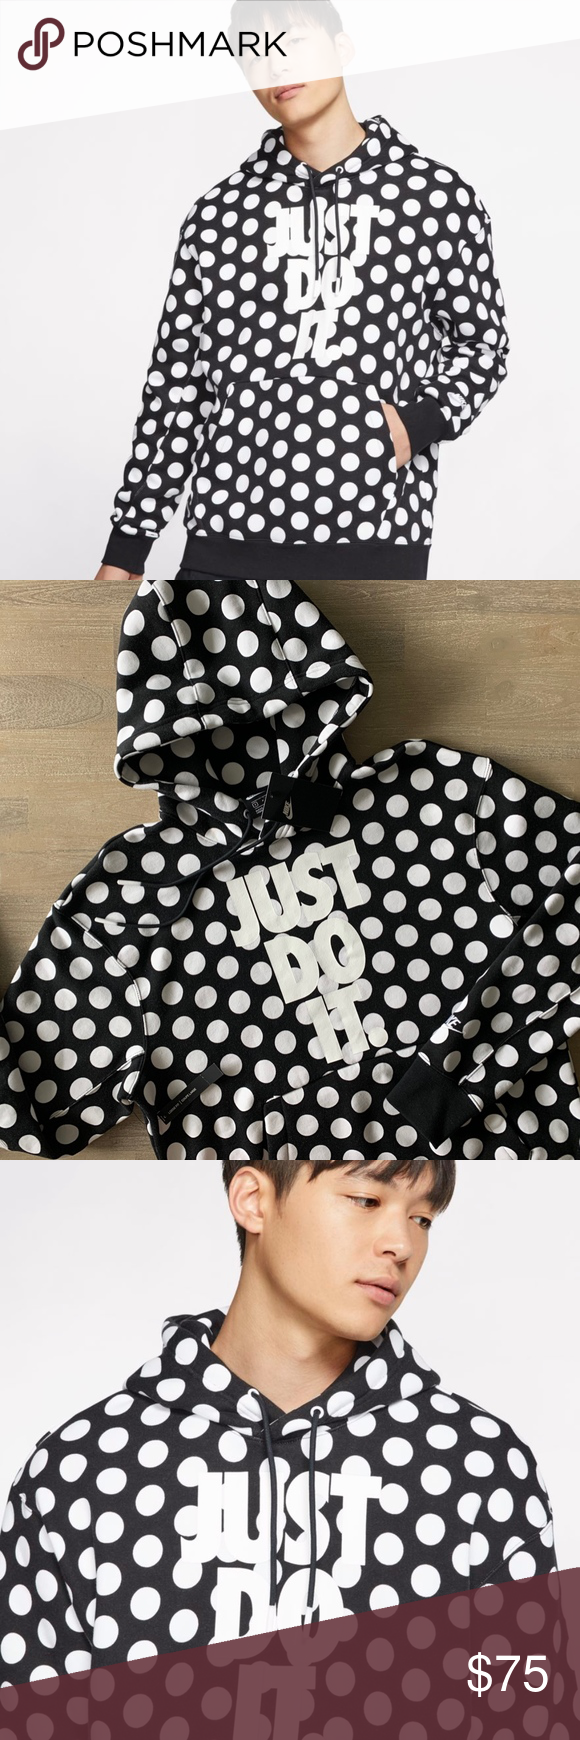 Predownload: Nike Sportswear Jdi Polka Dot Pullover Hoodie Brand New With Tags Orders Are Shipped Within 1 Business Da Hoodie Brands Nike Sportswear Pullover Hoodie [ 1740 x 580 Pixel ]